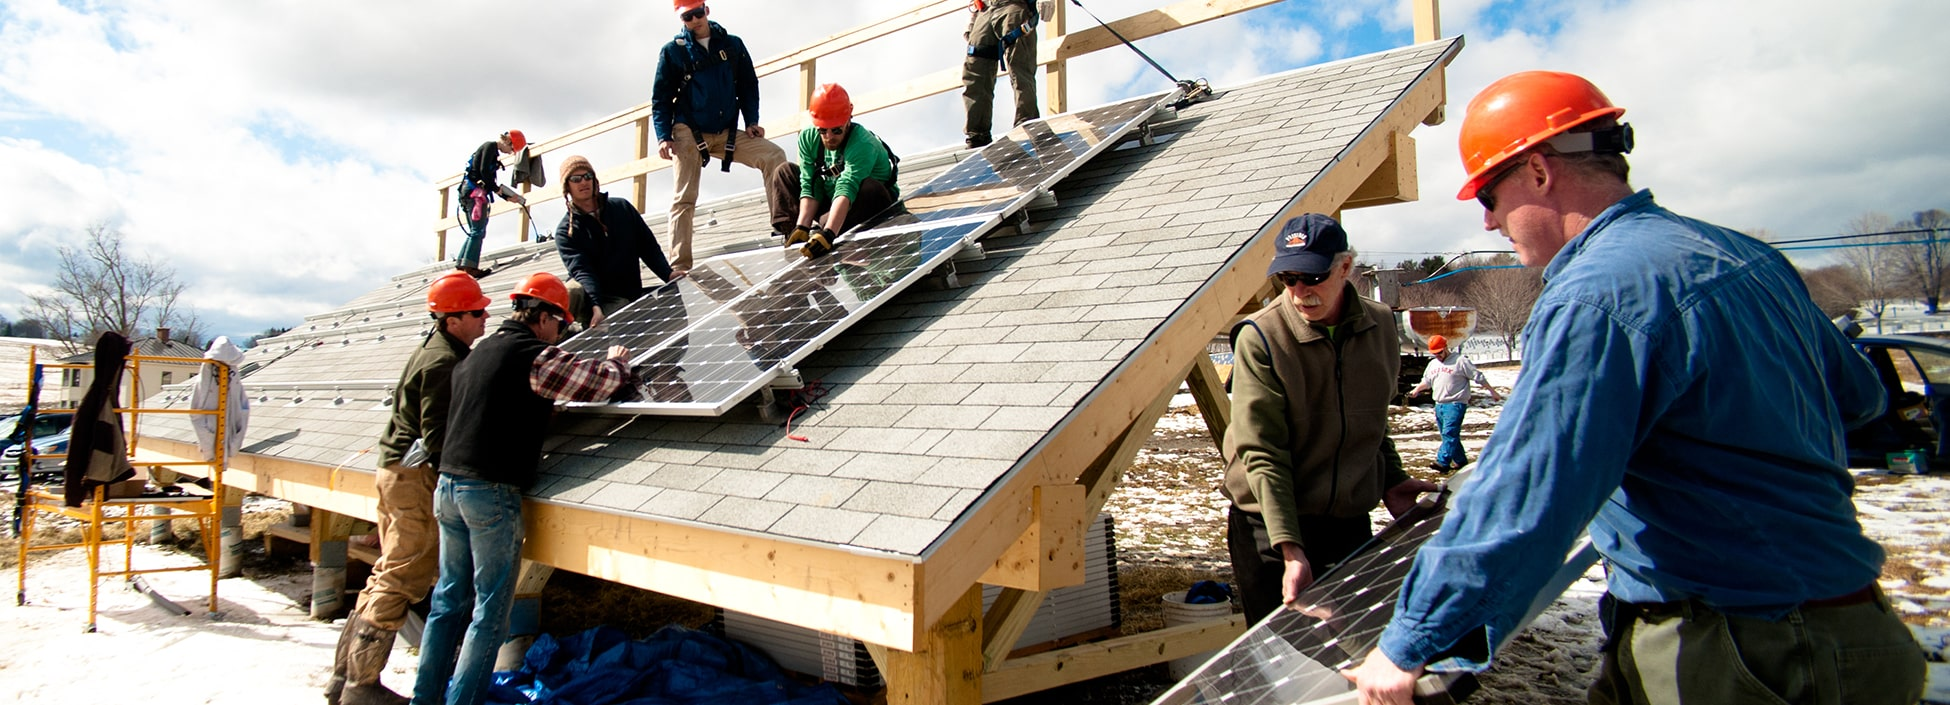 Students of the Renewable Energy program install solar panels at the Langevin house on the Randolph Center Campus, lab,  hands on